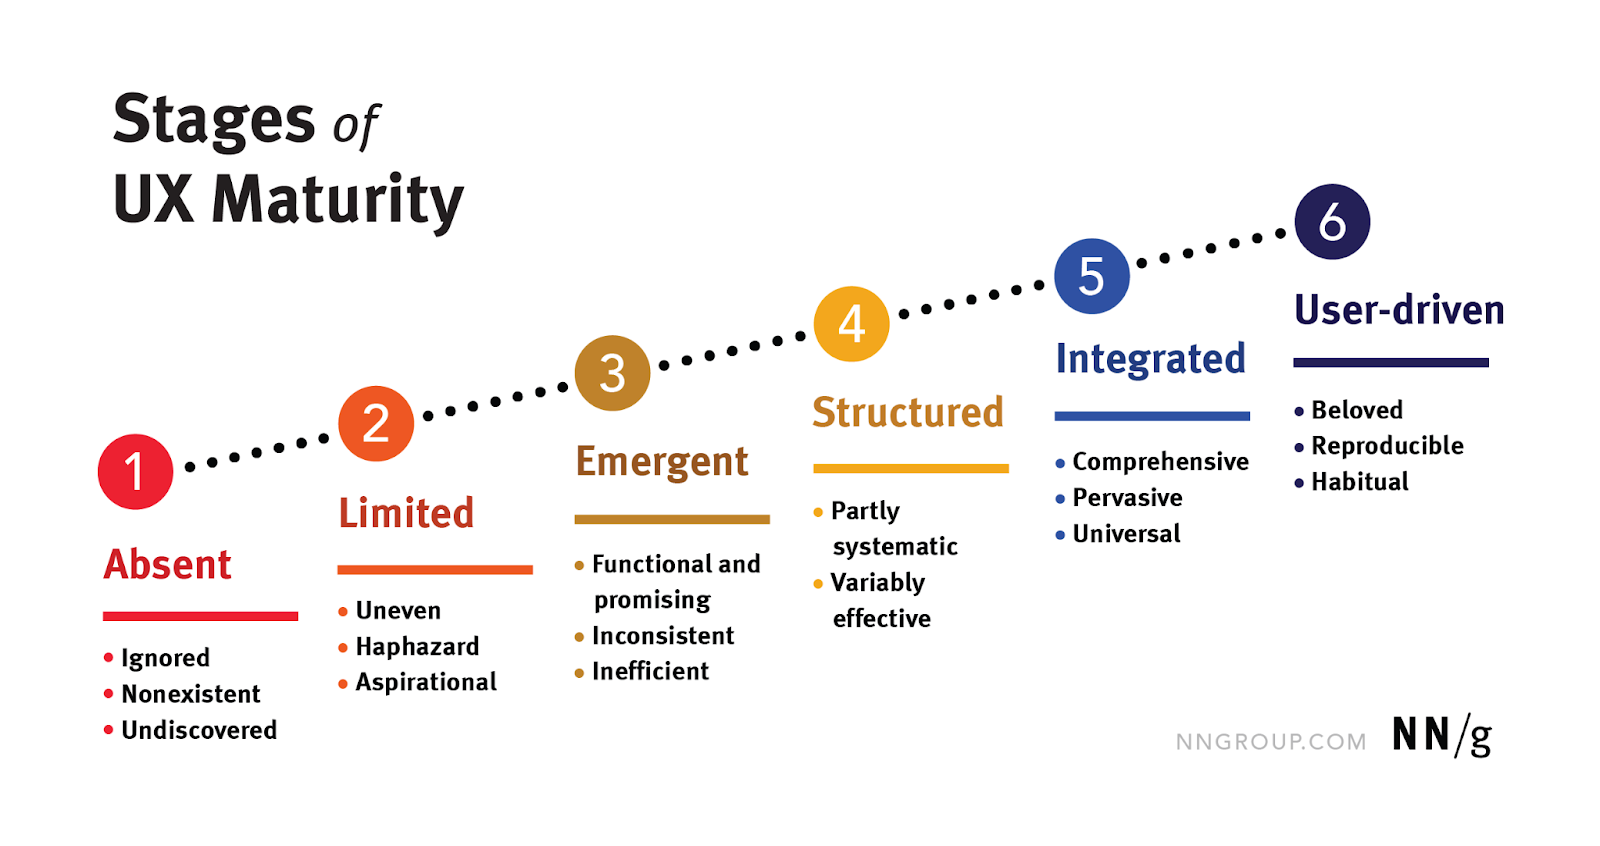 Stages of UX maturity: 1. Absent (Ignored, Nonexistent, Undiscovered). 2. Limited (Uneven, Haphazard, Aspirational) 3. Emergent (Functional and promising, Inconsistent, Inefficient) 4. Structured (Partly systematic, Variably effective) 5. Integrated (Comprehensive, Pervasive, Universal) 6. User-driven (Beloved, Reproducible, Habitual)